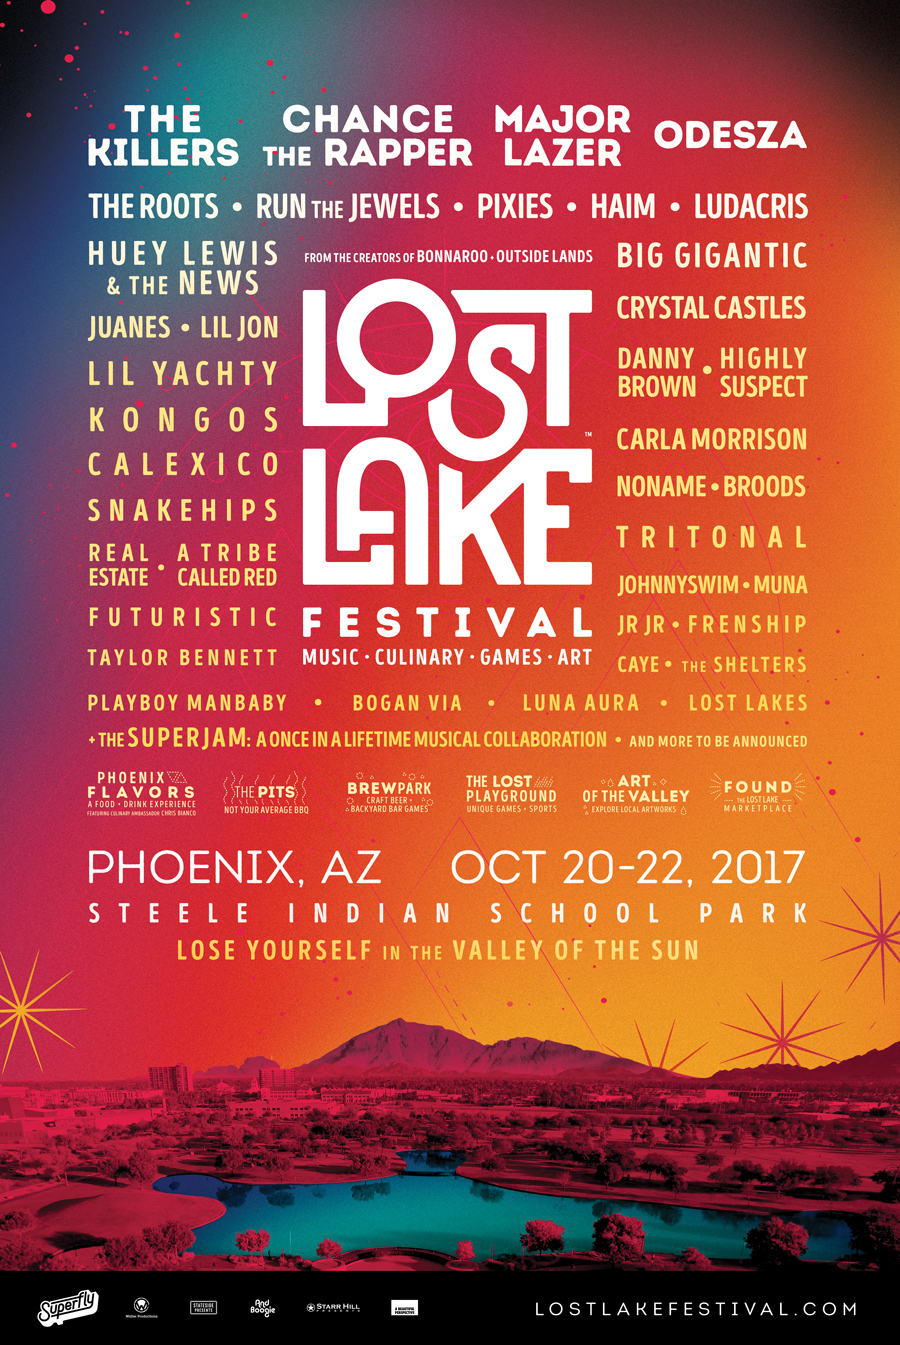 lost lake Lost Lake Festival reveals inaugural lineup: Chance the Rapper, The Killers, Pixies, and HAIM